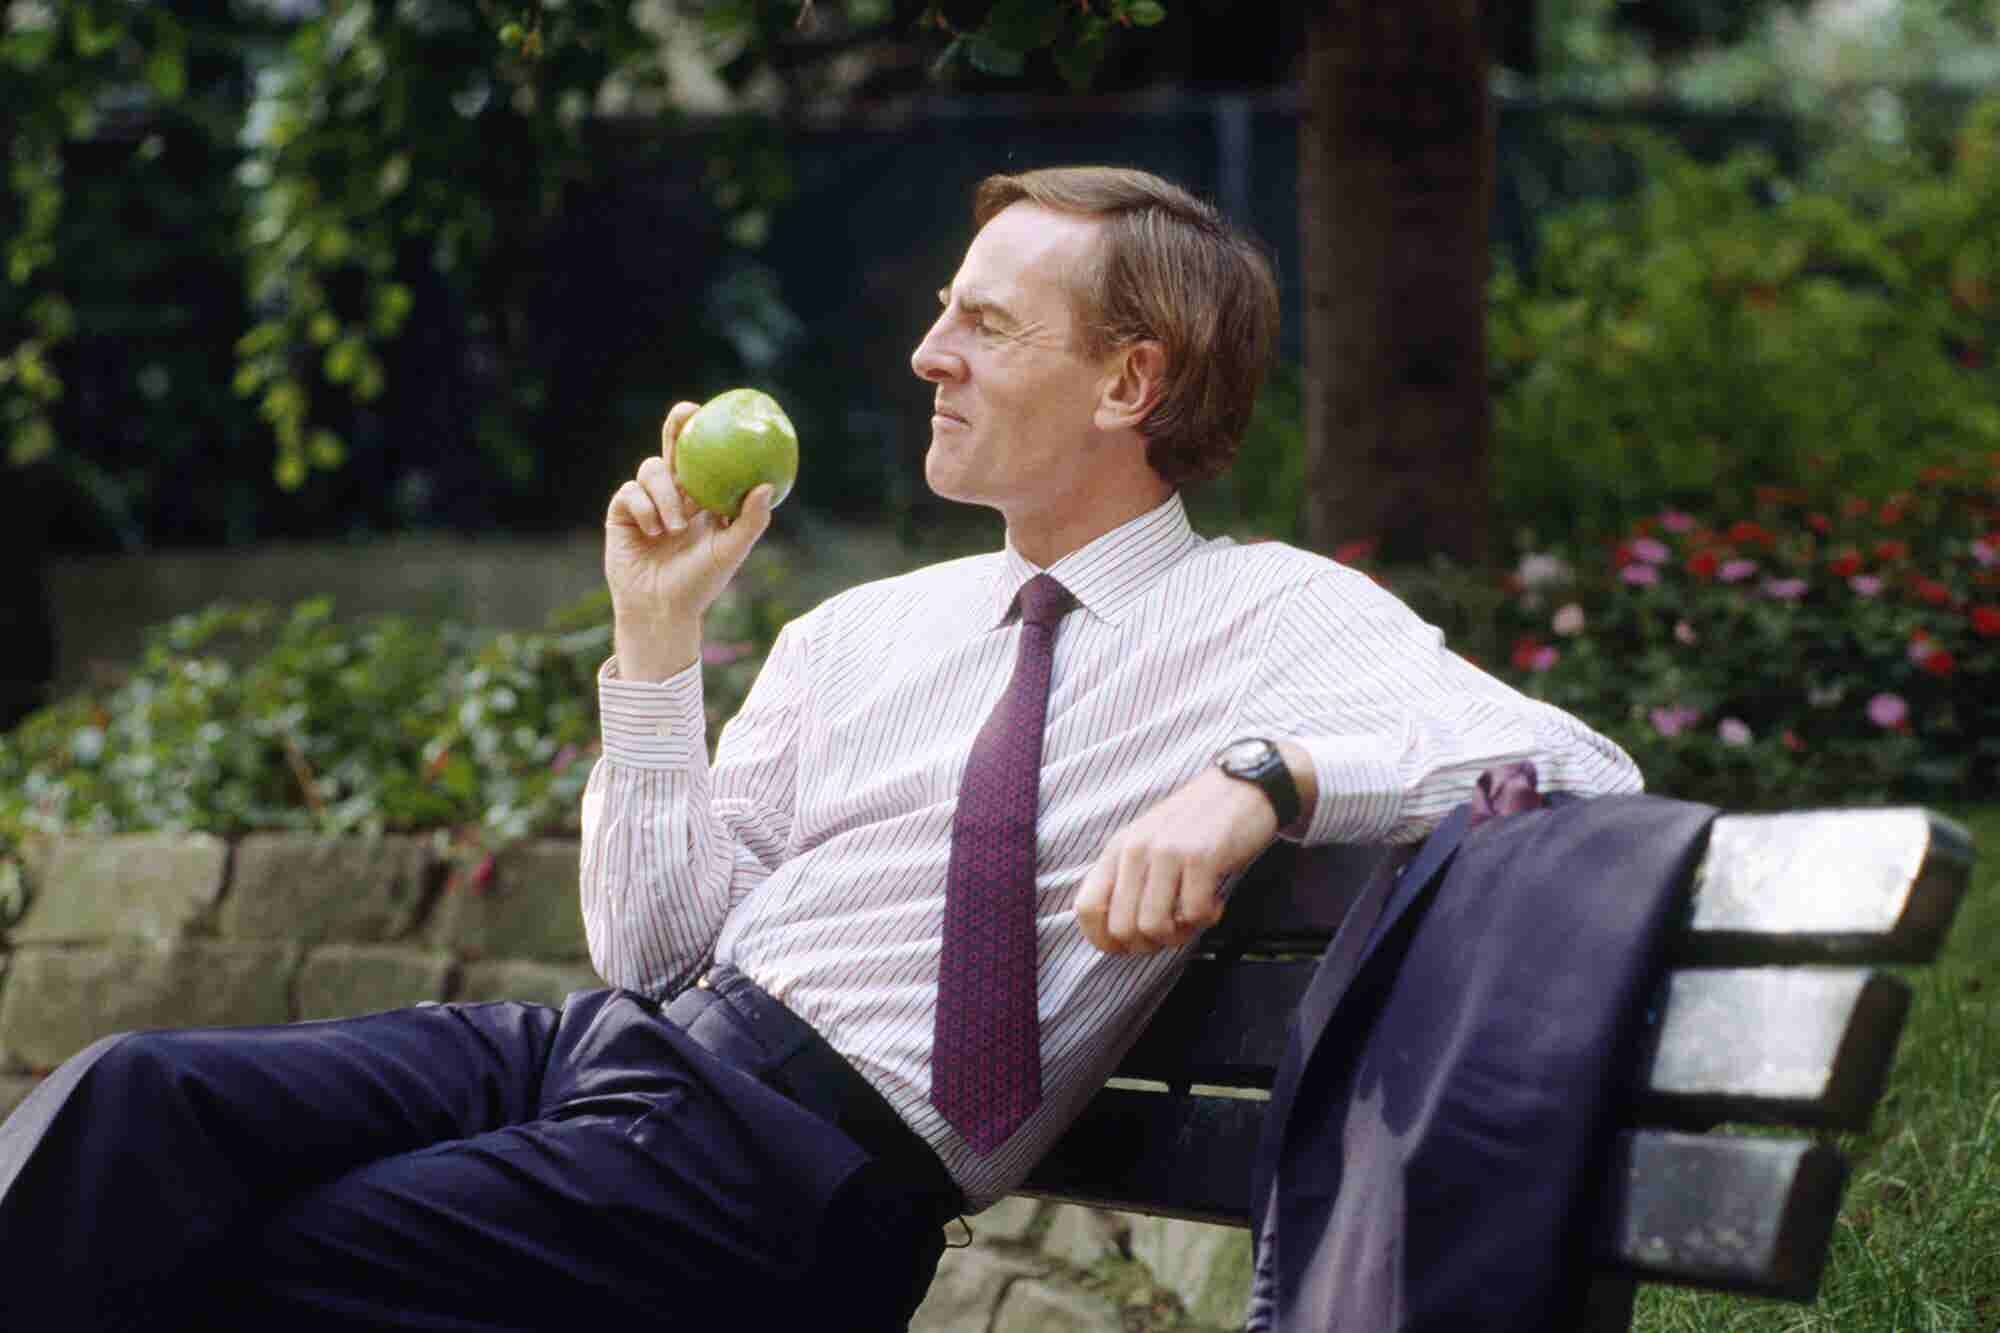 Former Apple CEO John Sculley Shares 4 Key Strategies for Growing and Marketing Your Business